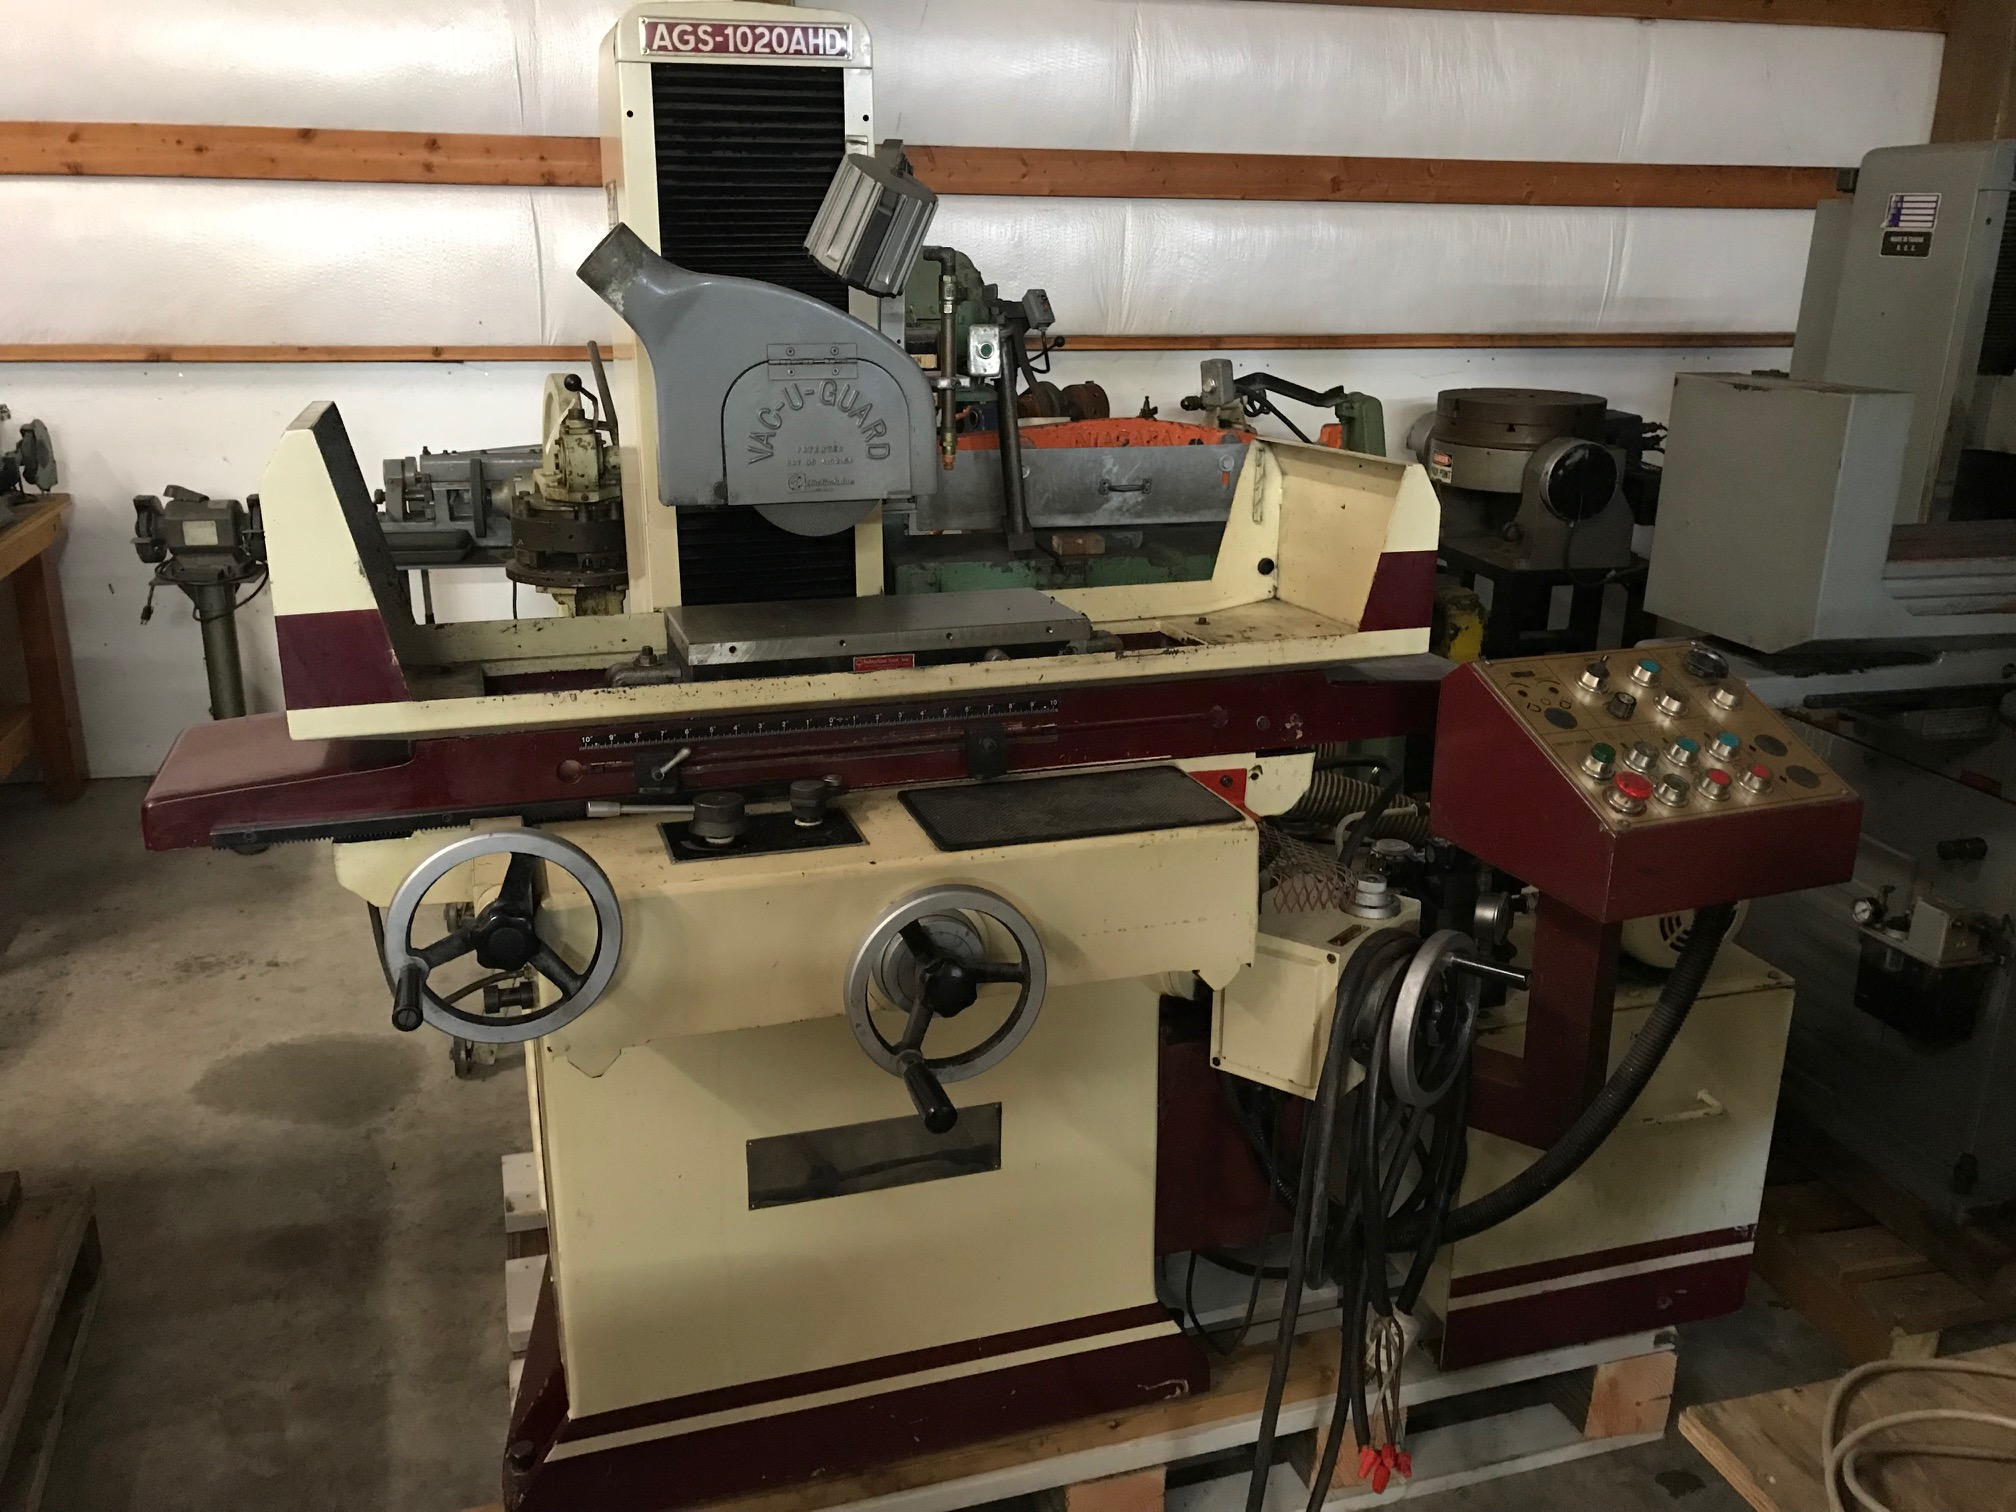 1992 Acer 1020 AHD Surface Grinder #1652